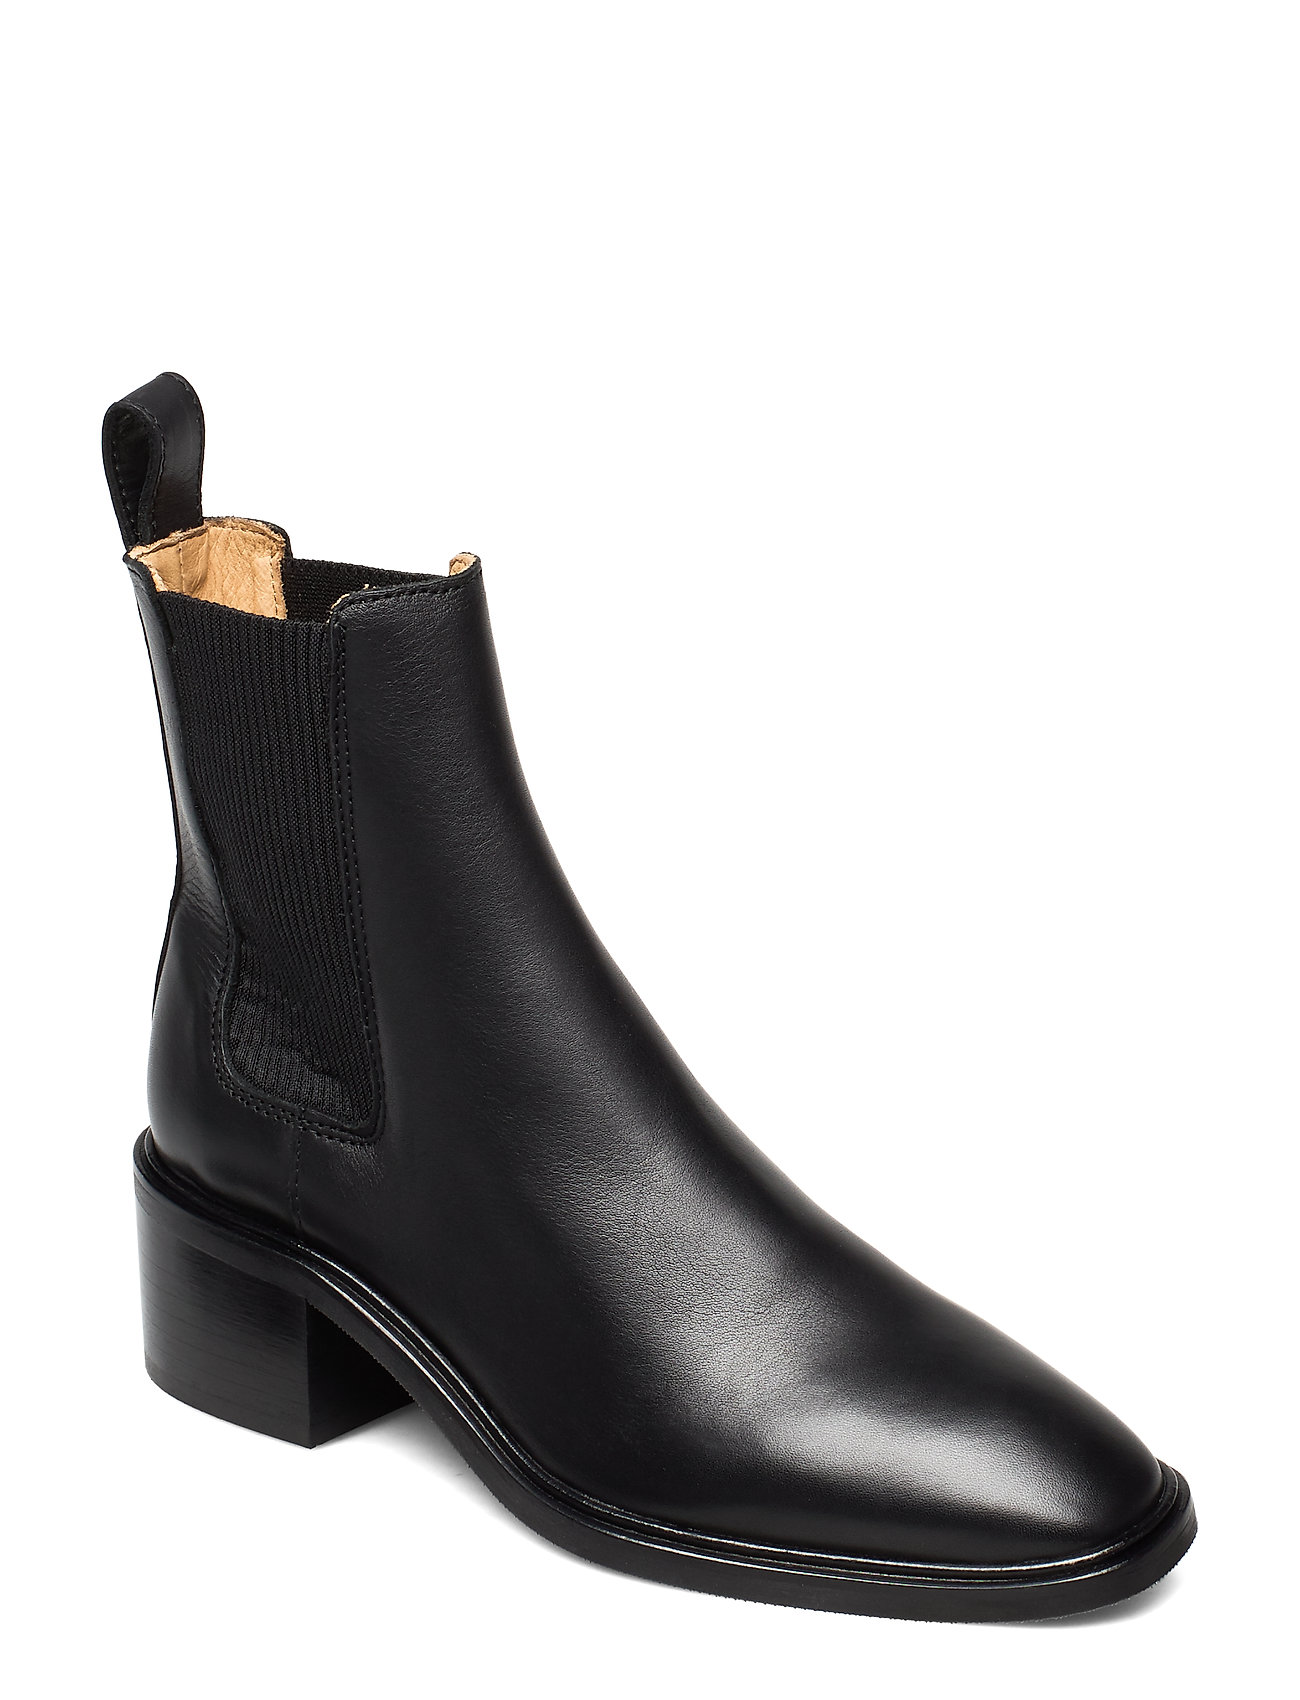 Image of All Day All Night Shoes Boots Ankle Boots Ankle Boot - Heel Sort ANNY NORD (3445363189)